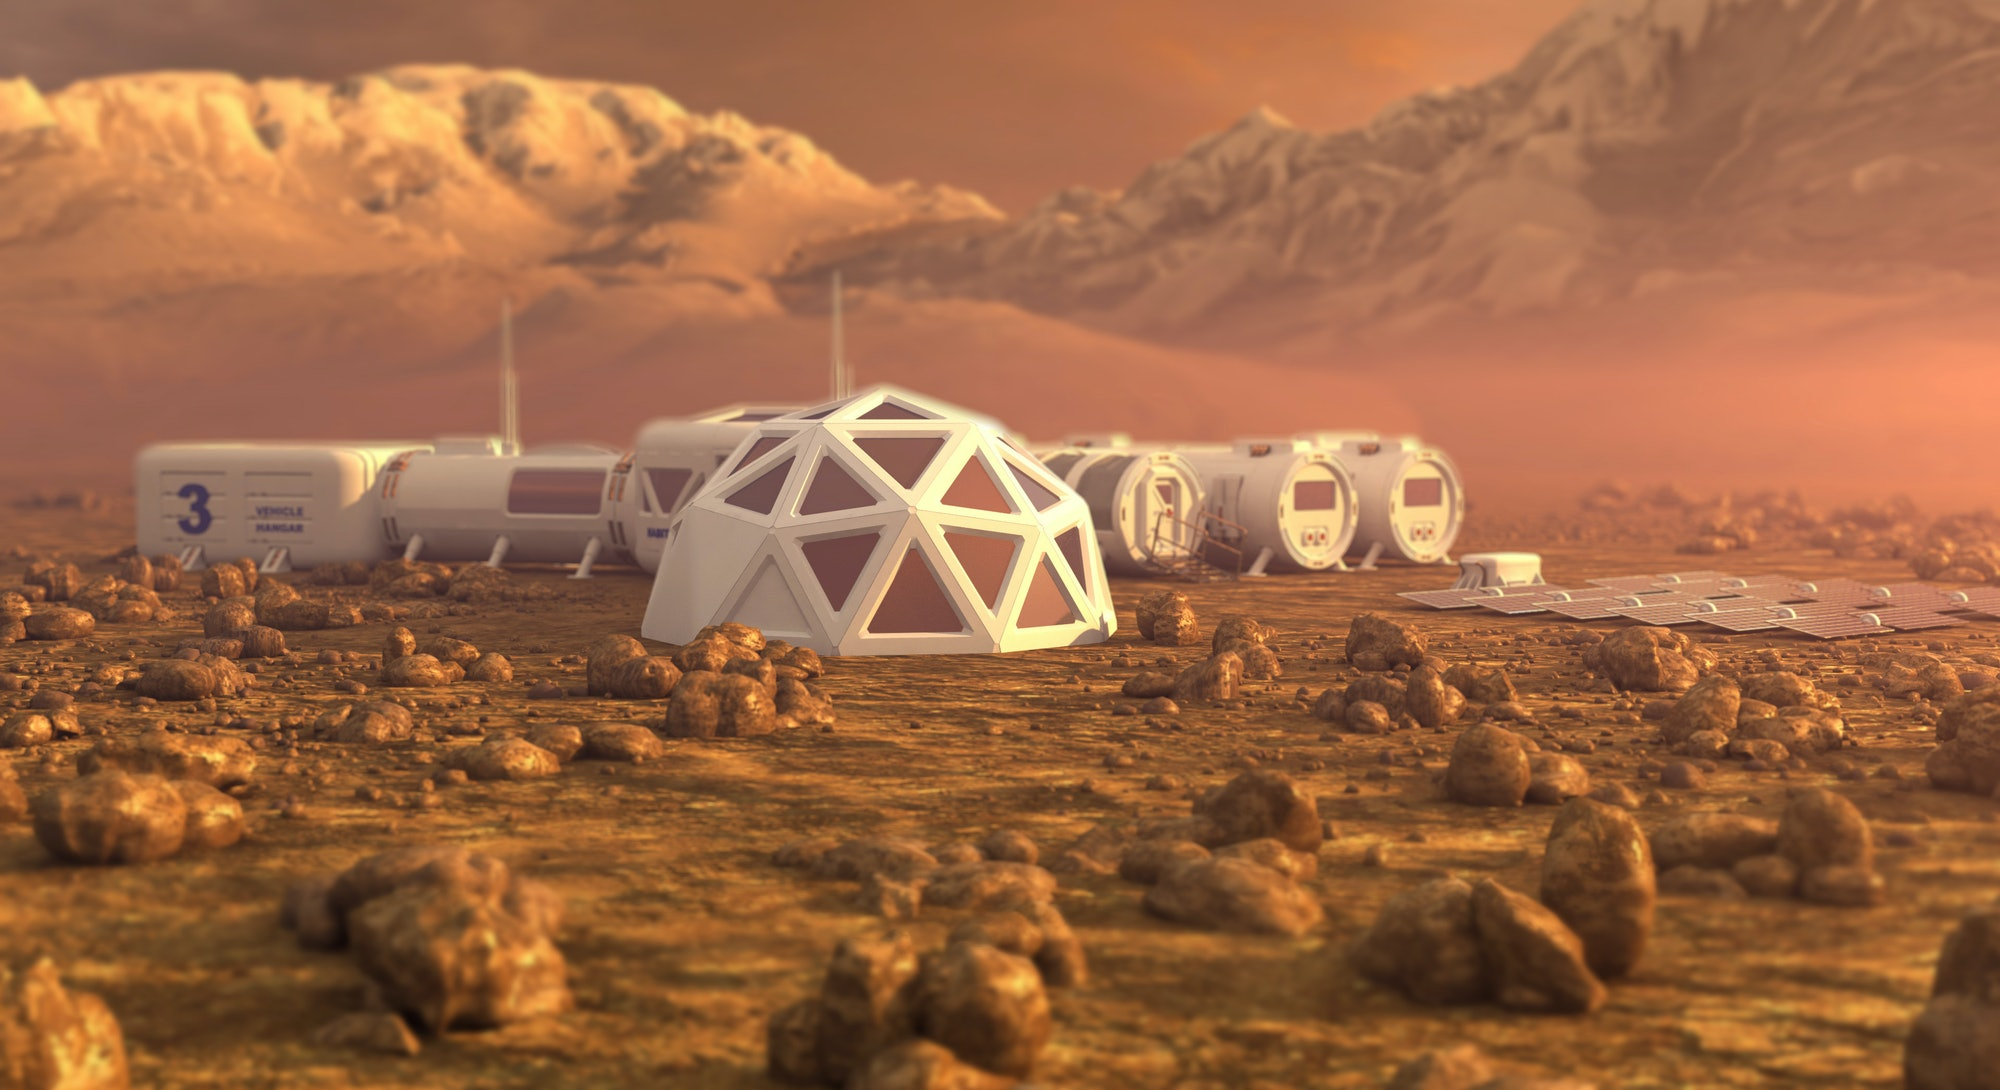 Mars planet satellite station orbit base martian colony space landscape. Elements of this image furn...